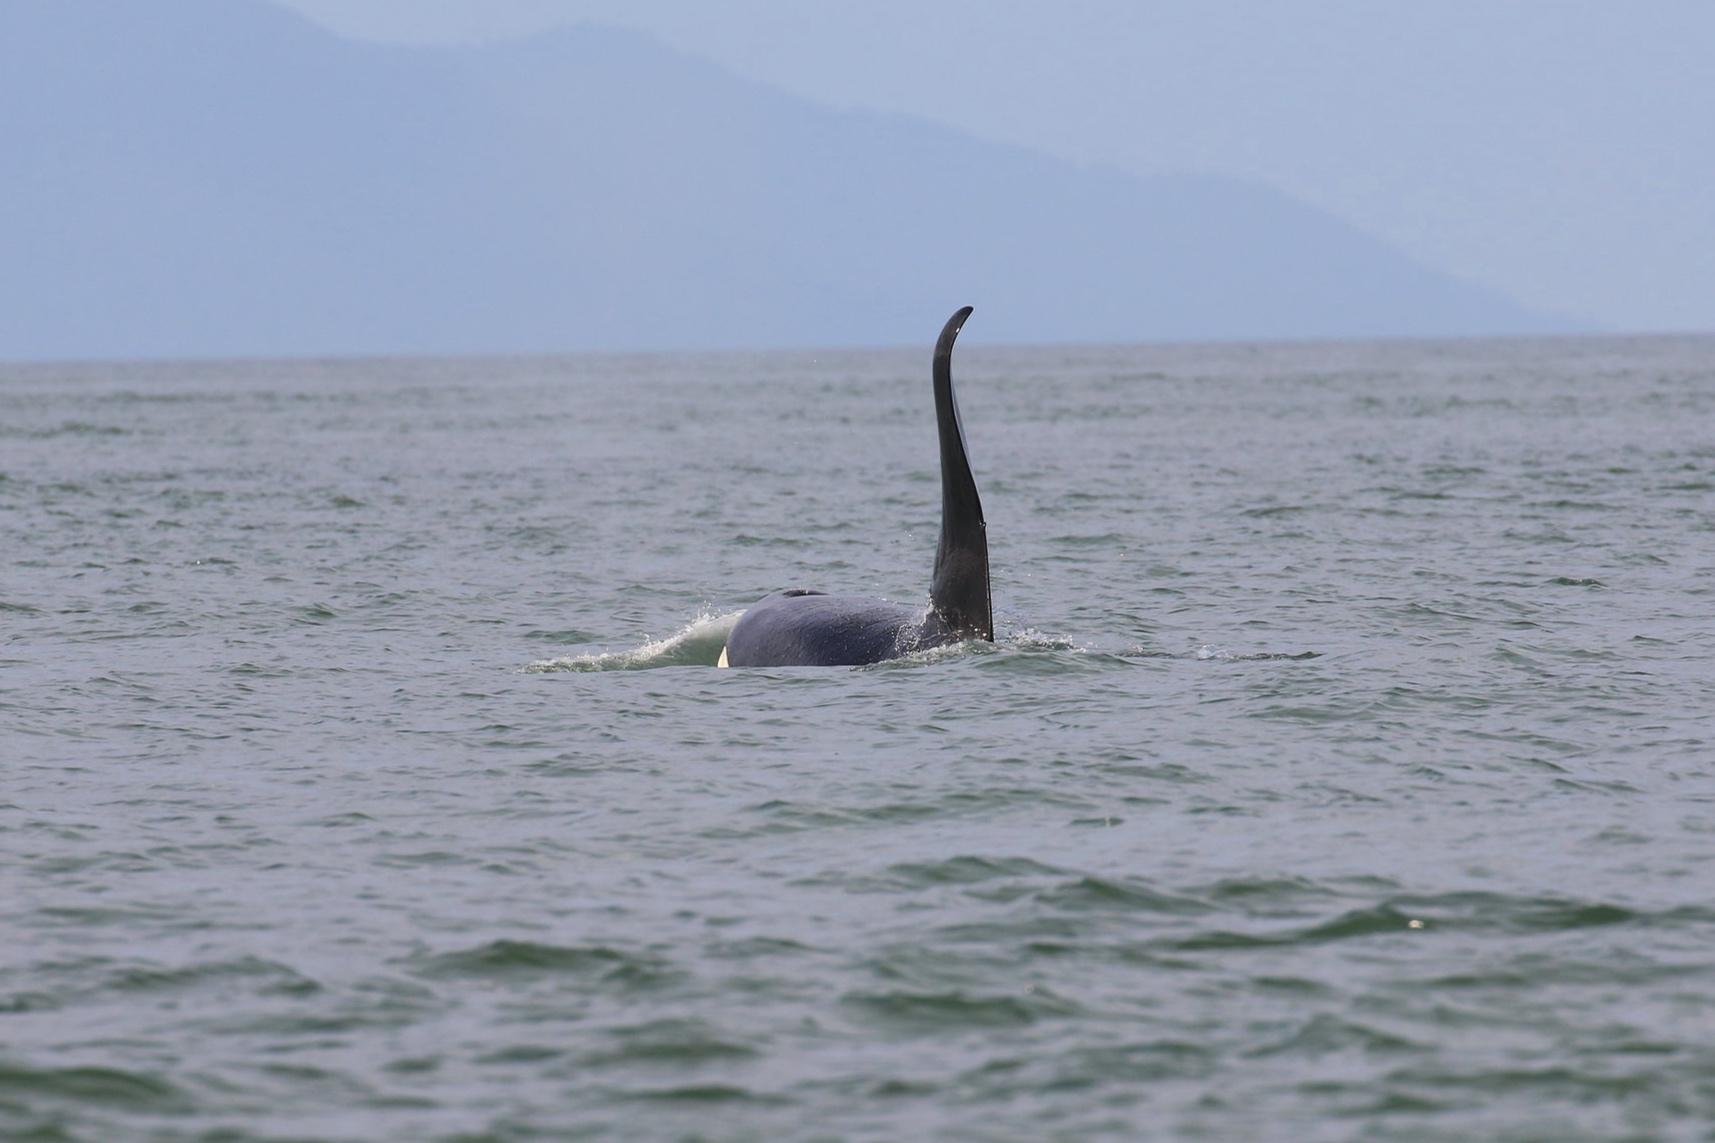 """Male orca's dorsal fins may become curved with age like T46E - """"Camillo"""" here. Photo by Ryan Uslu (3:30)."""